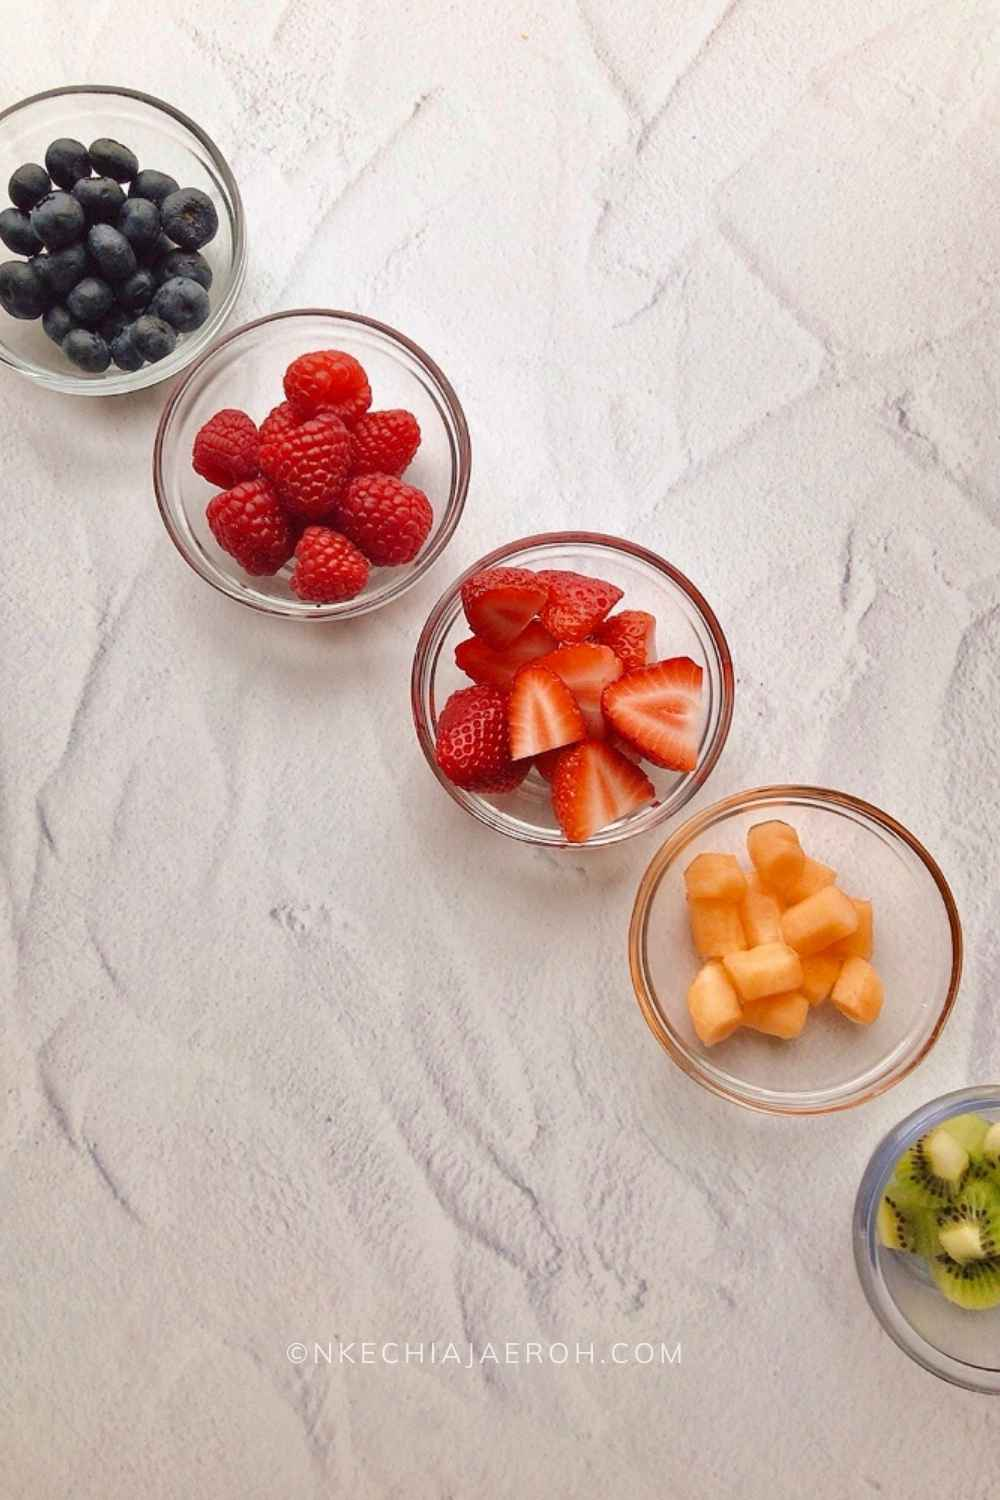 I used blueberries, strawberries, raspberries, kiwi (which is also a kind of berry), coconut water, and cantaloupe to make this fruit cereal. My love for melons knows no bound; I have some on hand and had to include it. There is nothing better than fresh coconut water; I have always felt that it tastes different from the store-bought coconut water. So I got a fresh coconut, cracked it open, and added the entire water to my nature's cereal bowl.